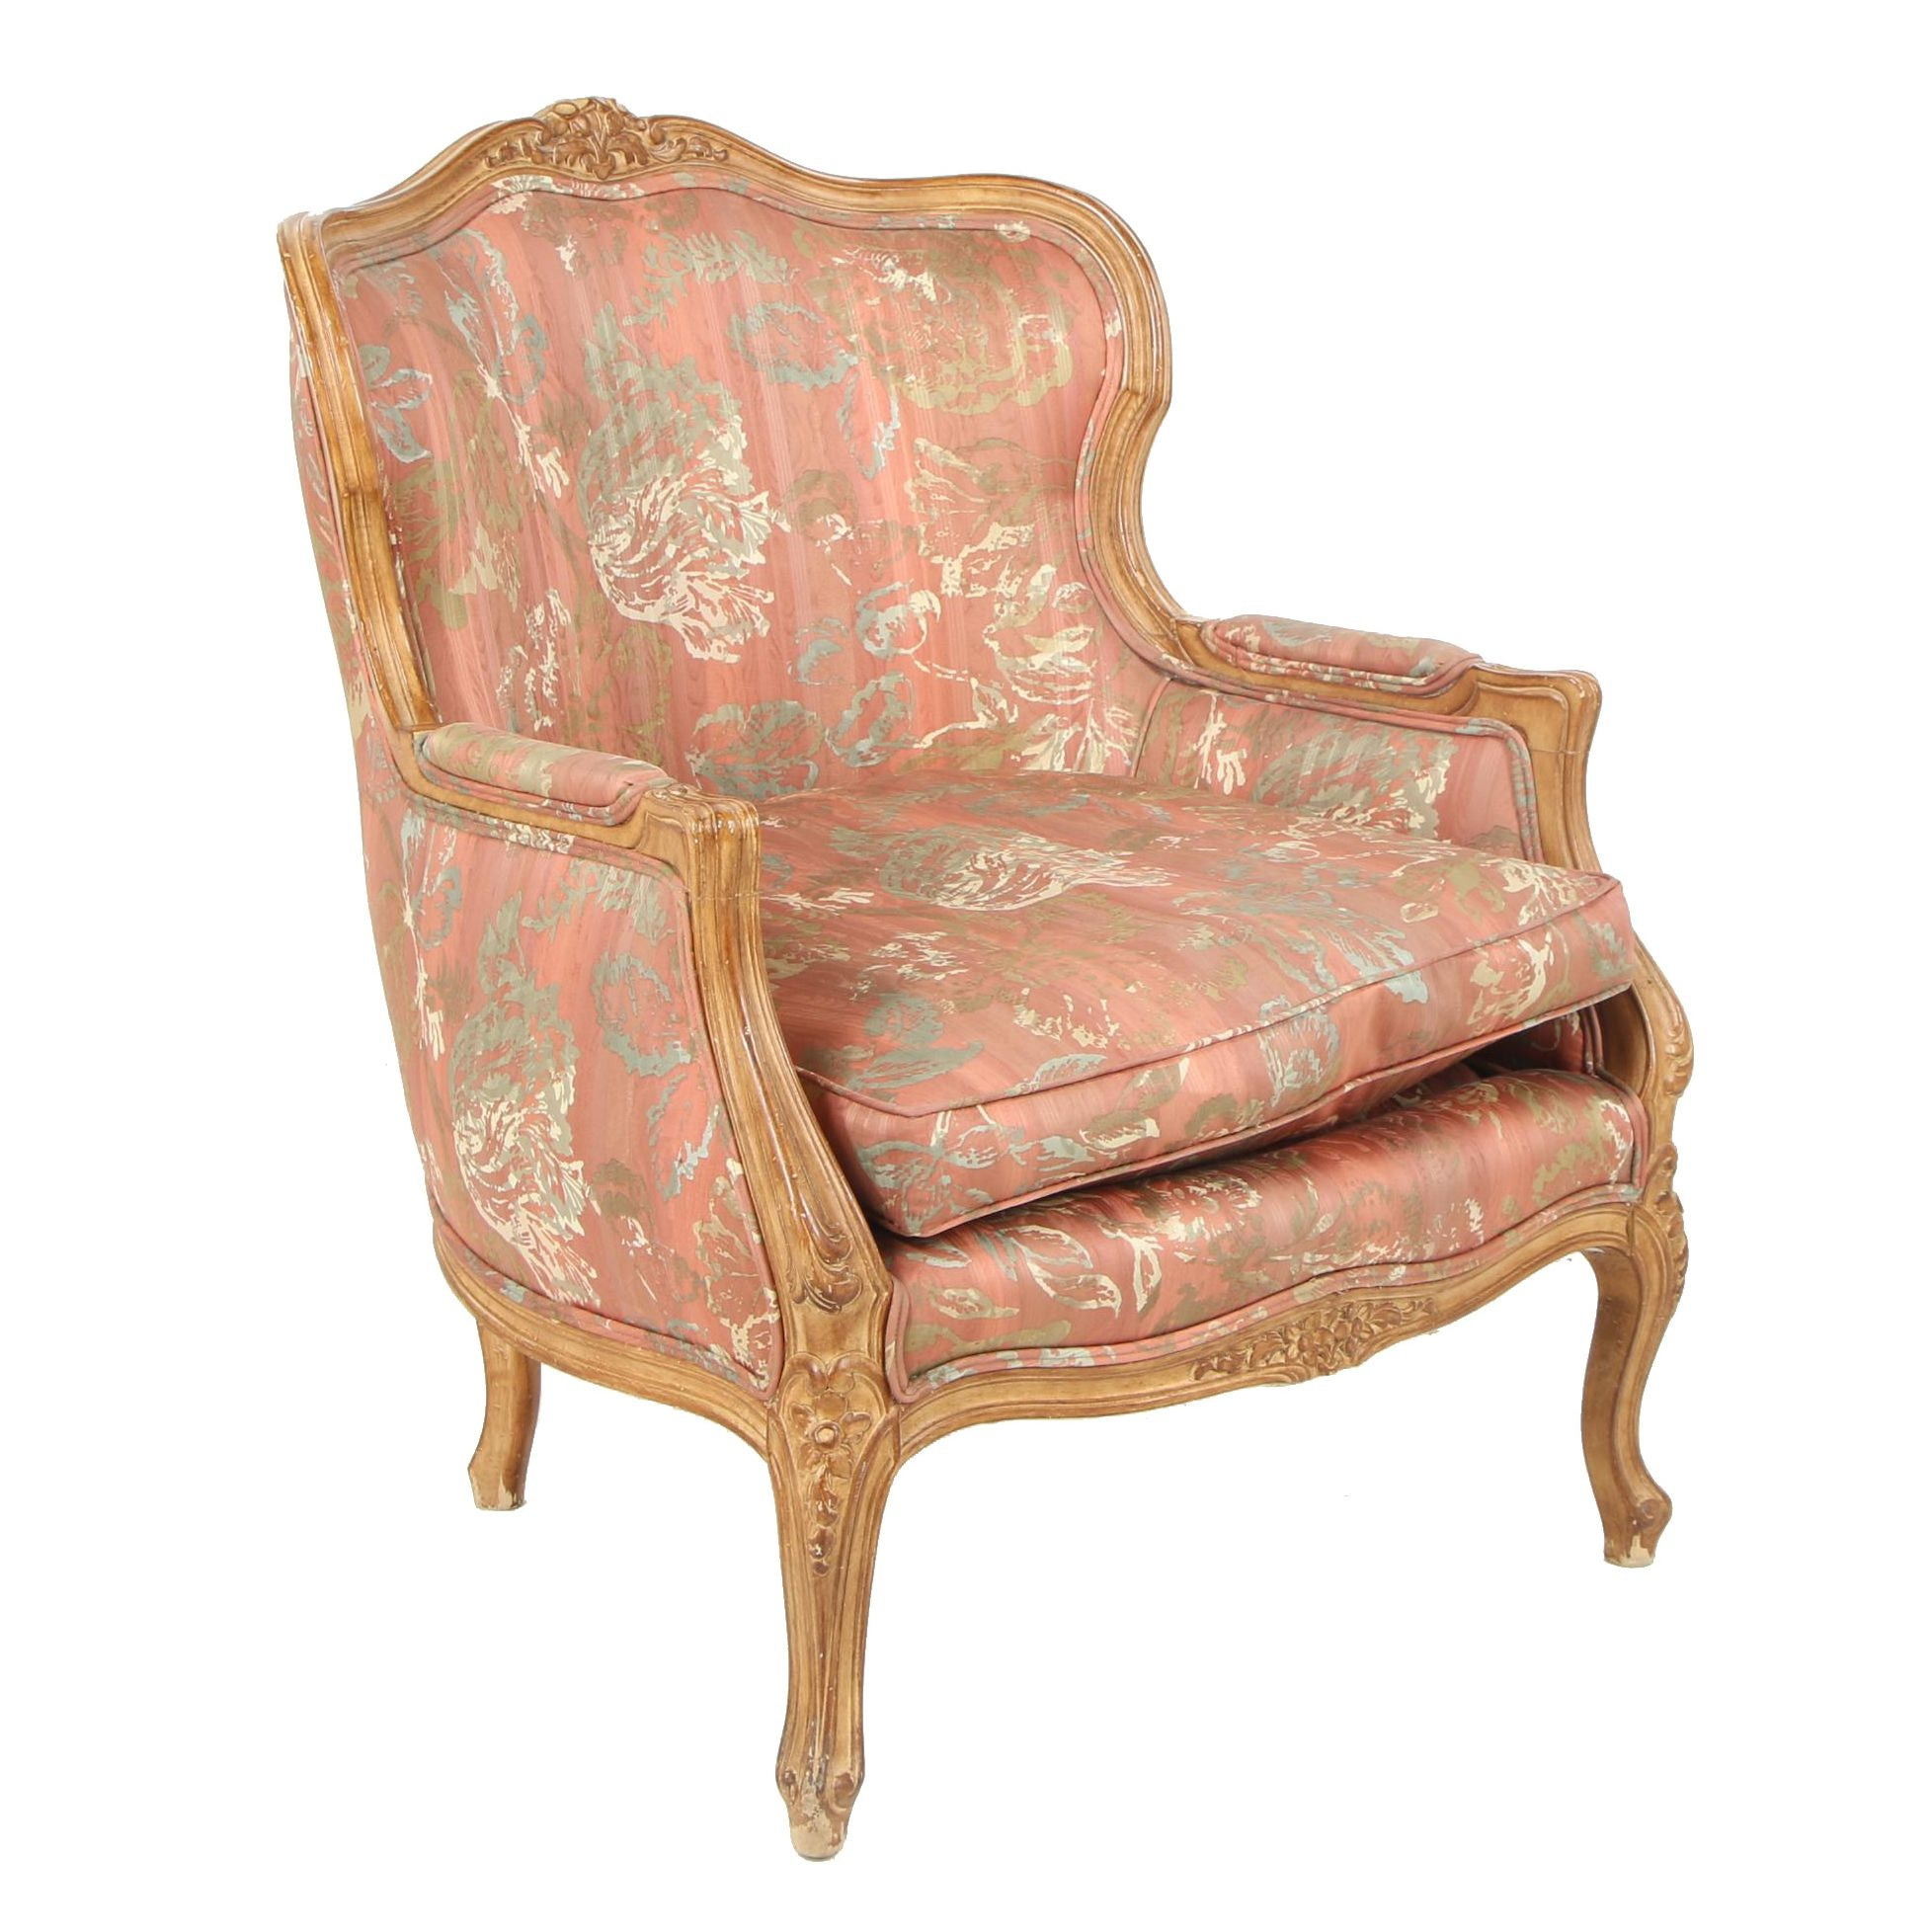 French Provincial Style Carved Birch Frame Upholstered Armchair, Mid-20th C.